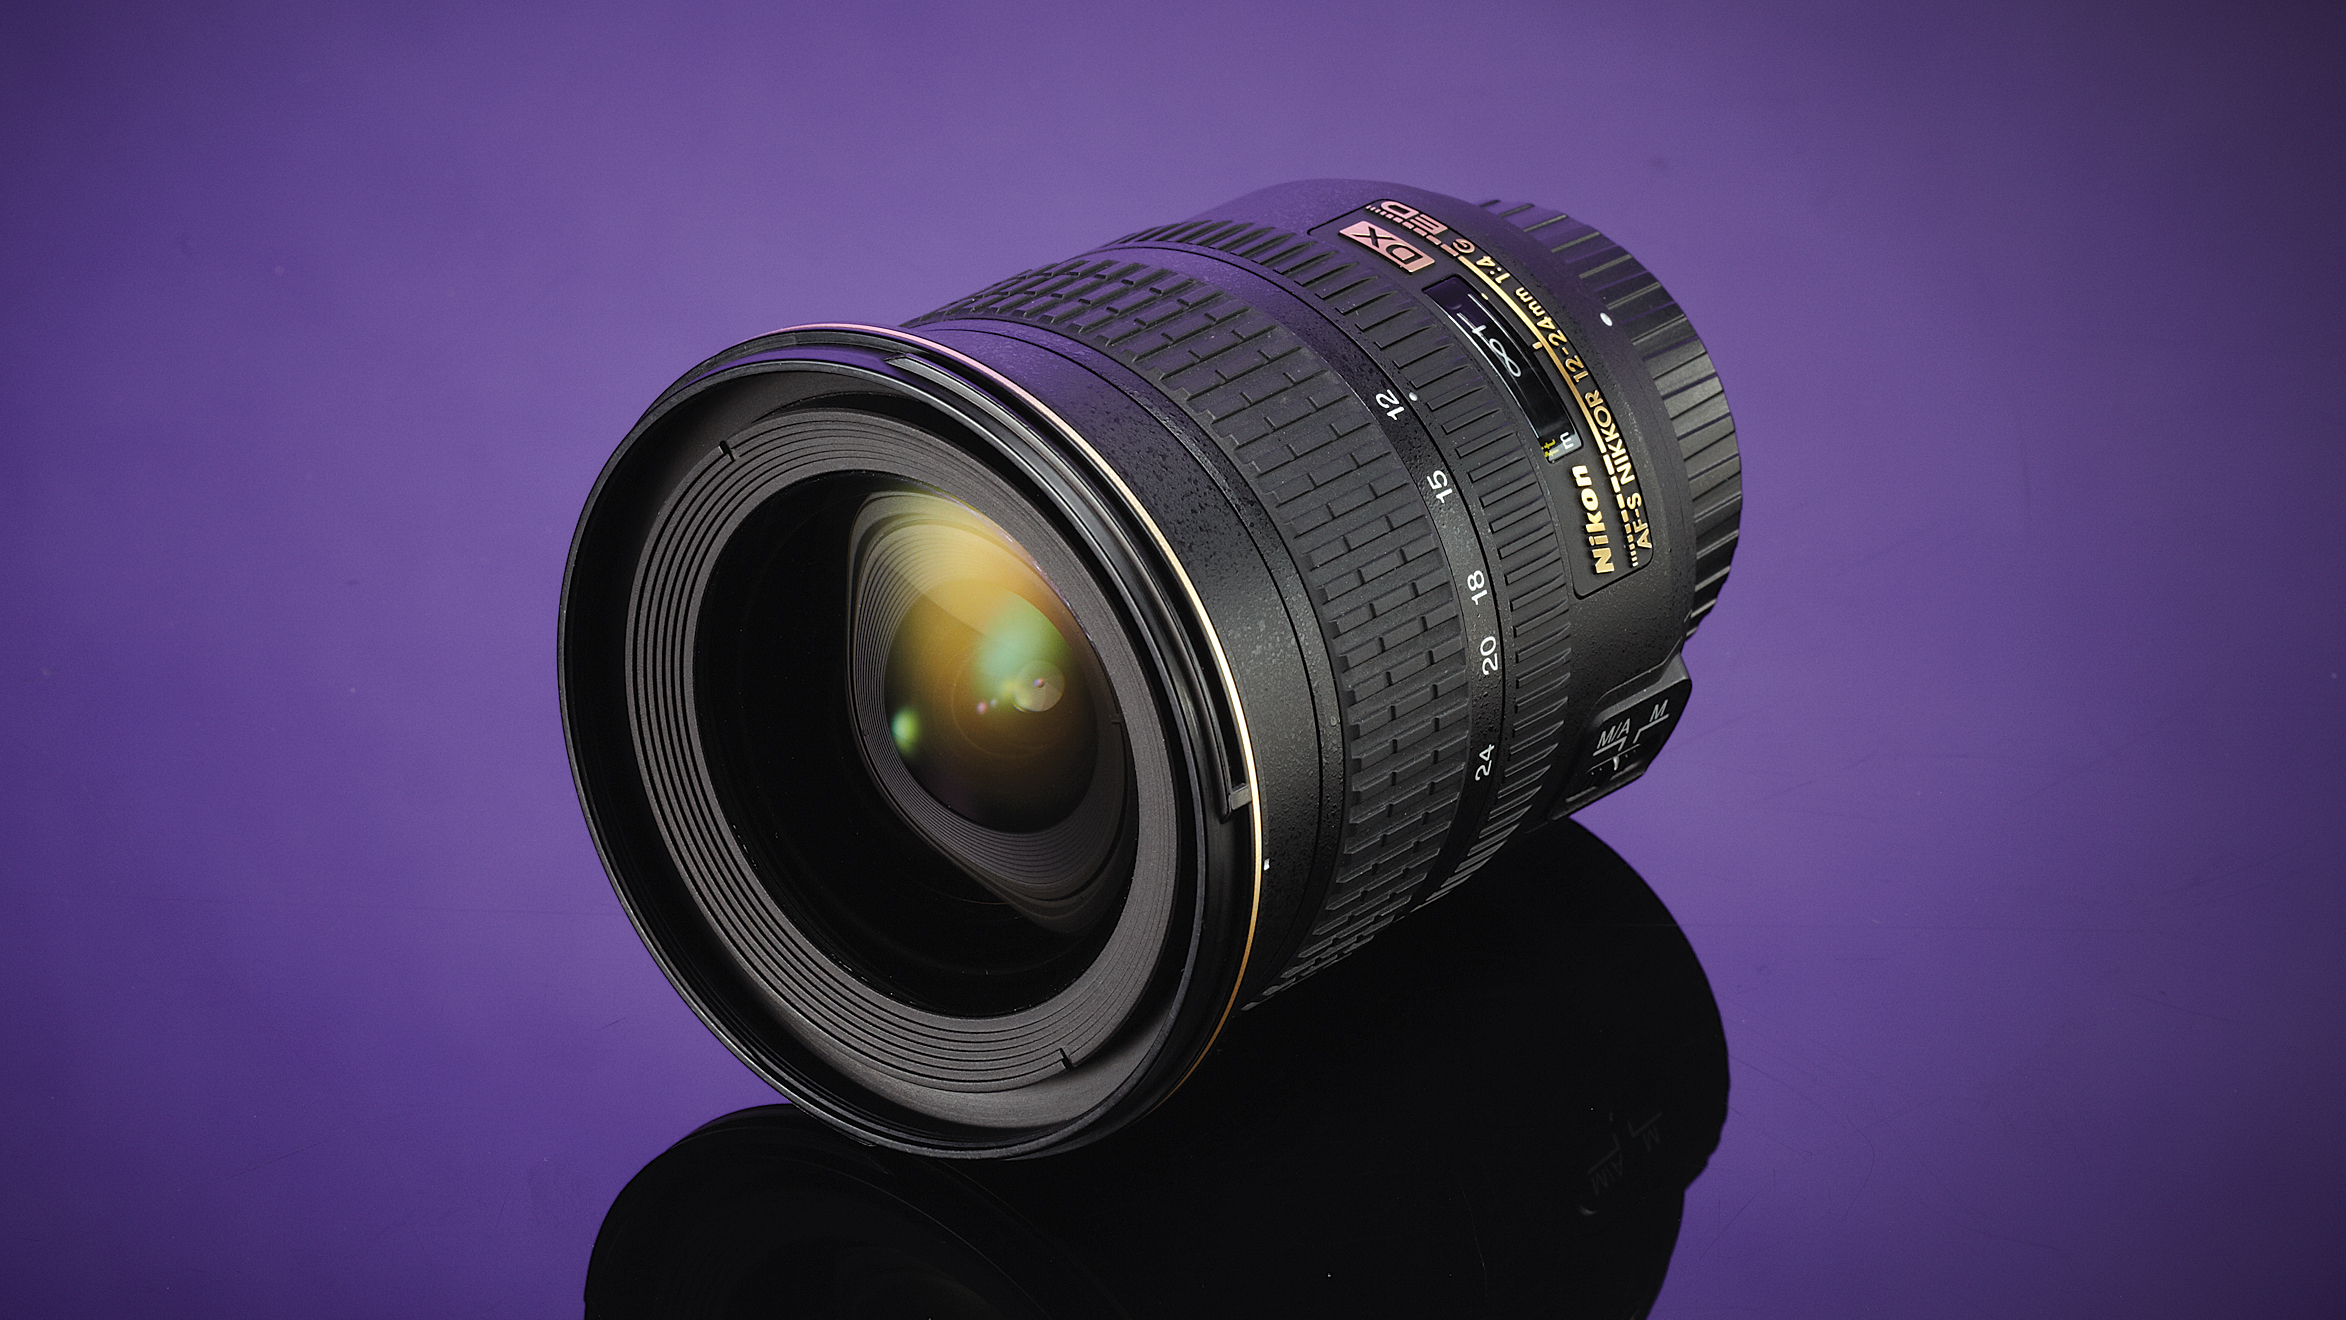 Nikon AF-S DX 12-24mm F/4G IF-ED